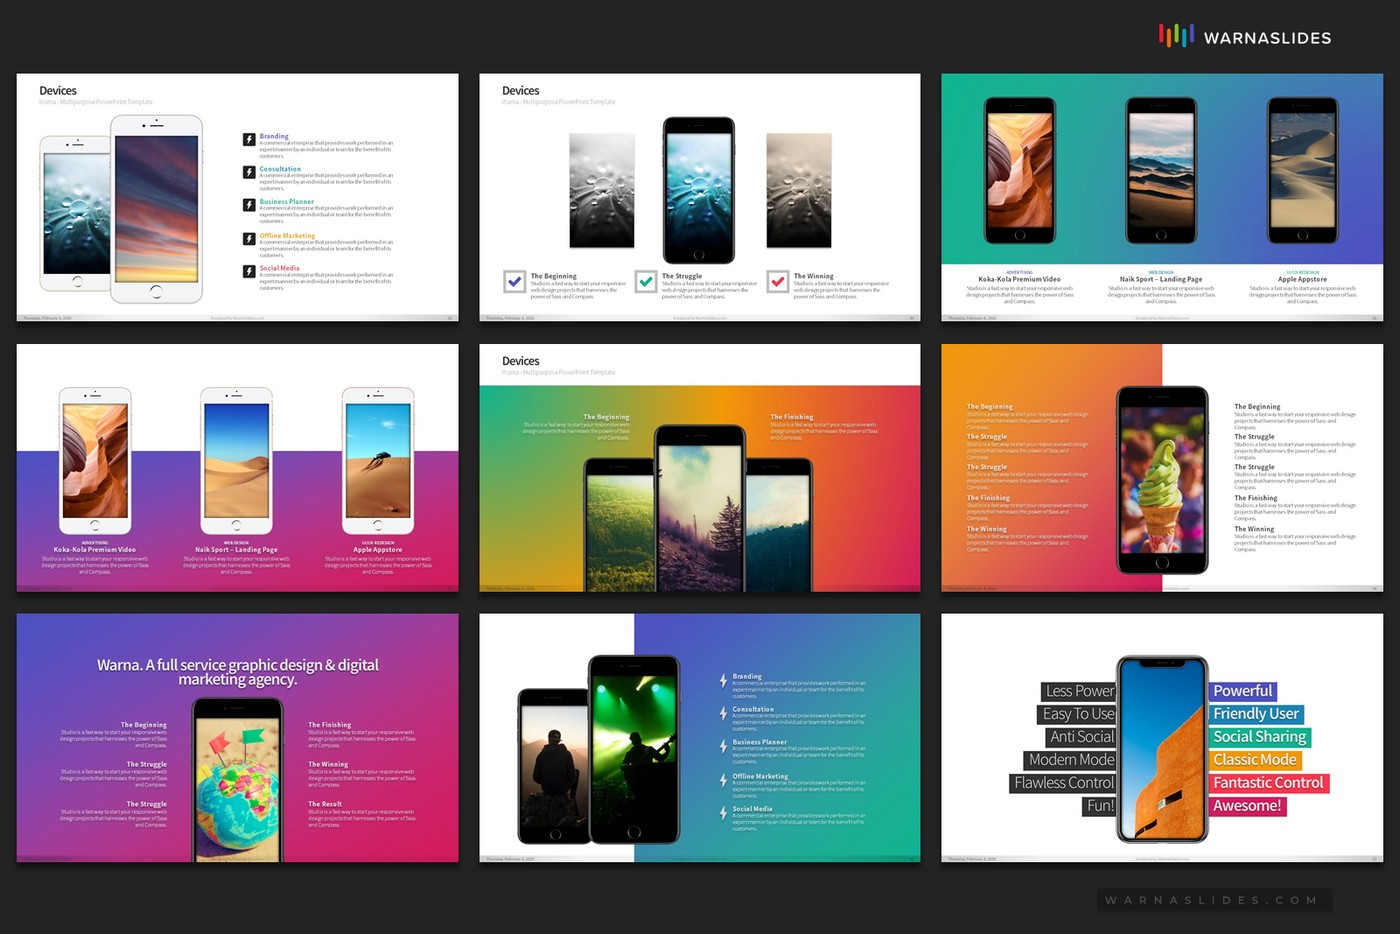 Devices-Smartphone-App-PowerPoint-Template-for-Business-Pitch-Deck-Professional-Creative-PowerPoint-Icons-009